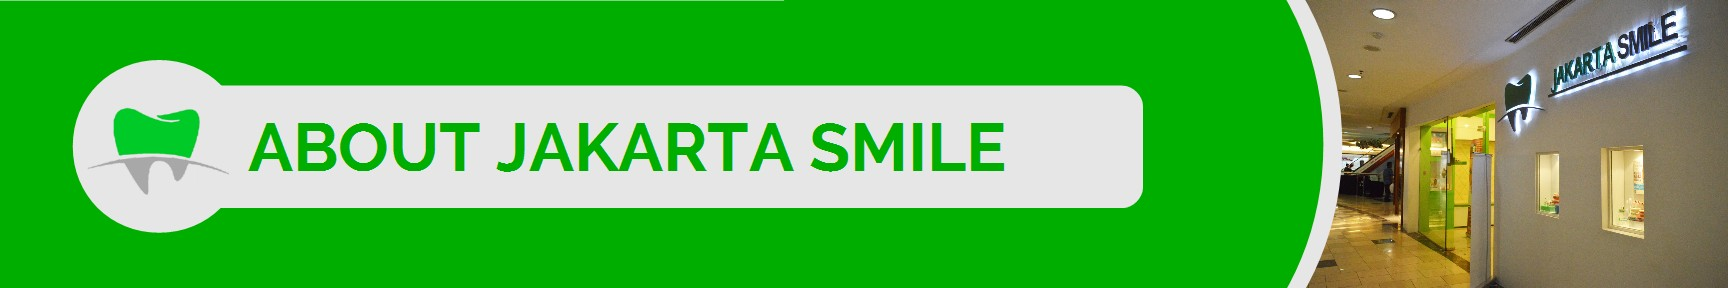 About Jakarta Smile